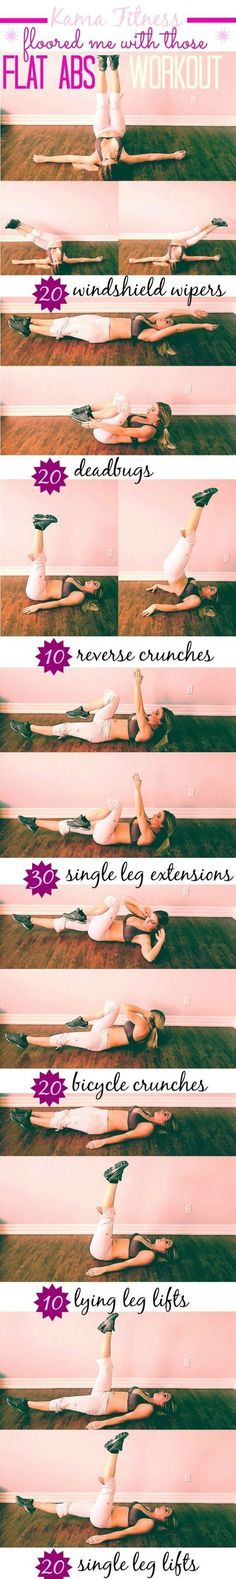 Awesome home workout plan, with FREE WEEKENDS and no Equipment!